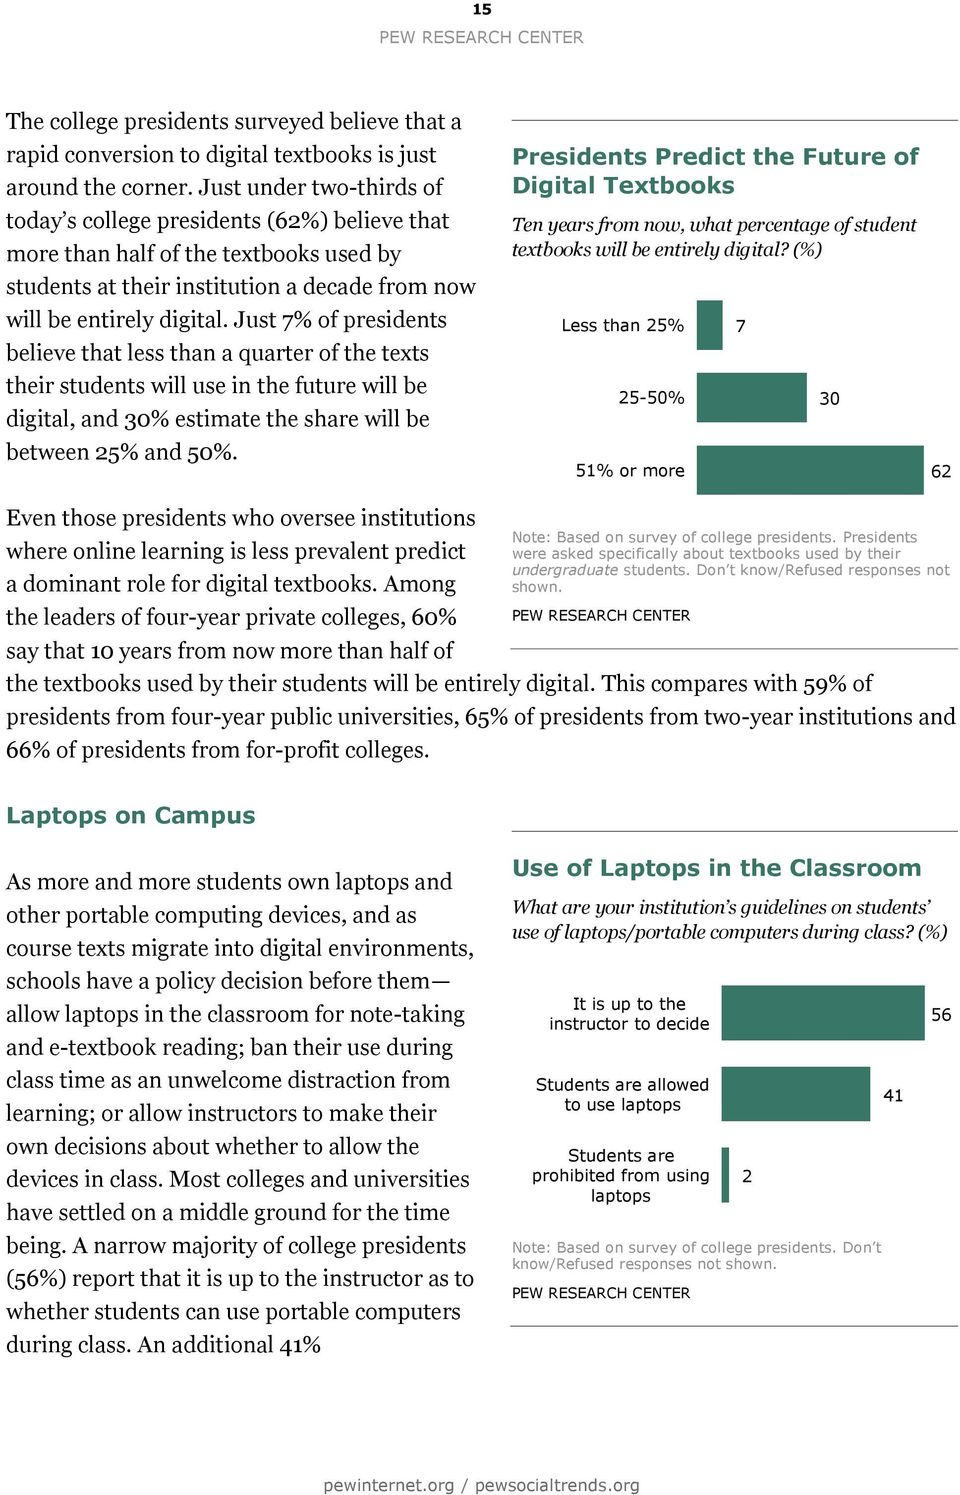 Just 7% of presidents believe that less than a quarter of the texts their students will use in the future will be digital, and 30% estimate the share will be between 25% and 50%.